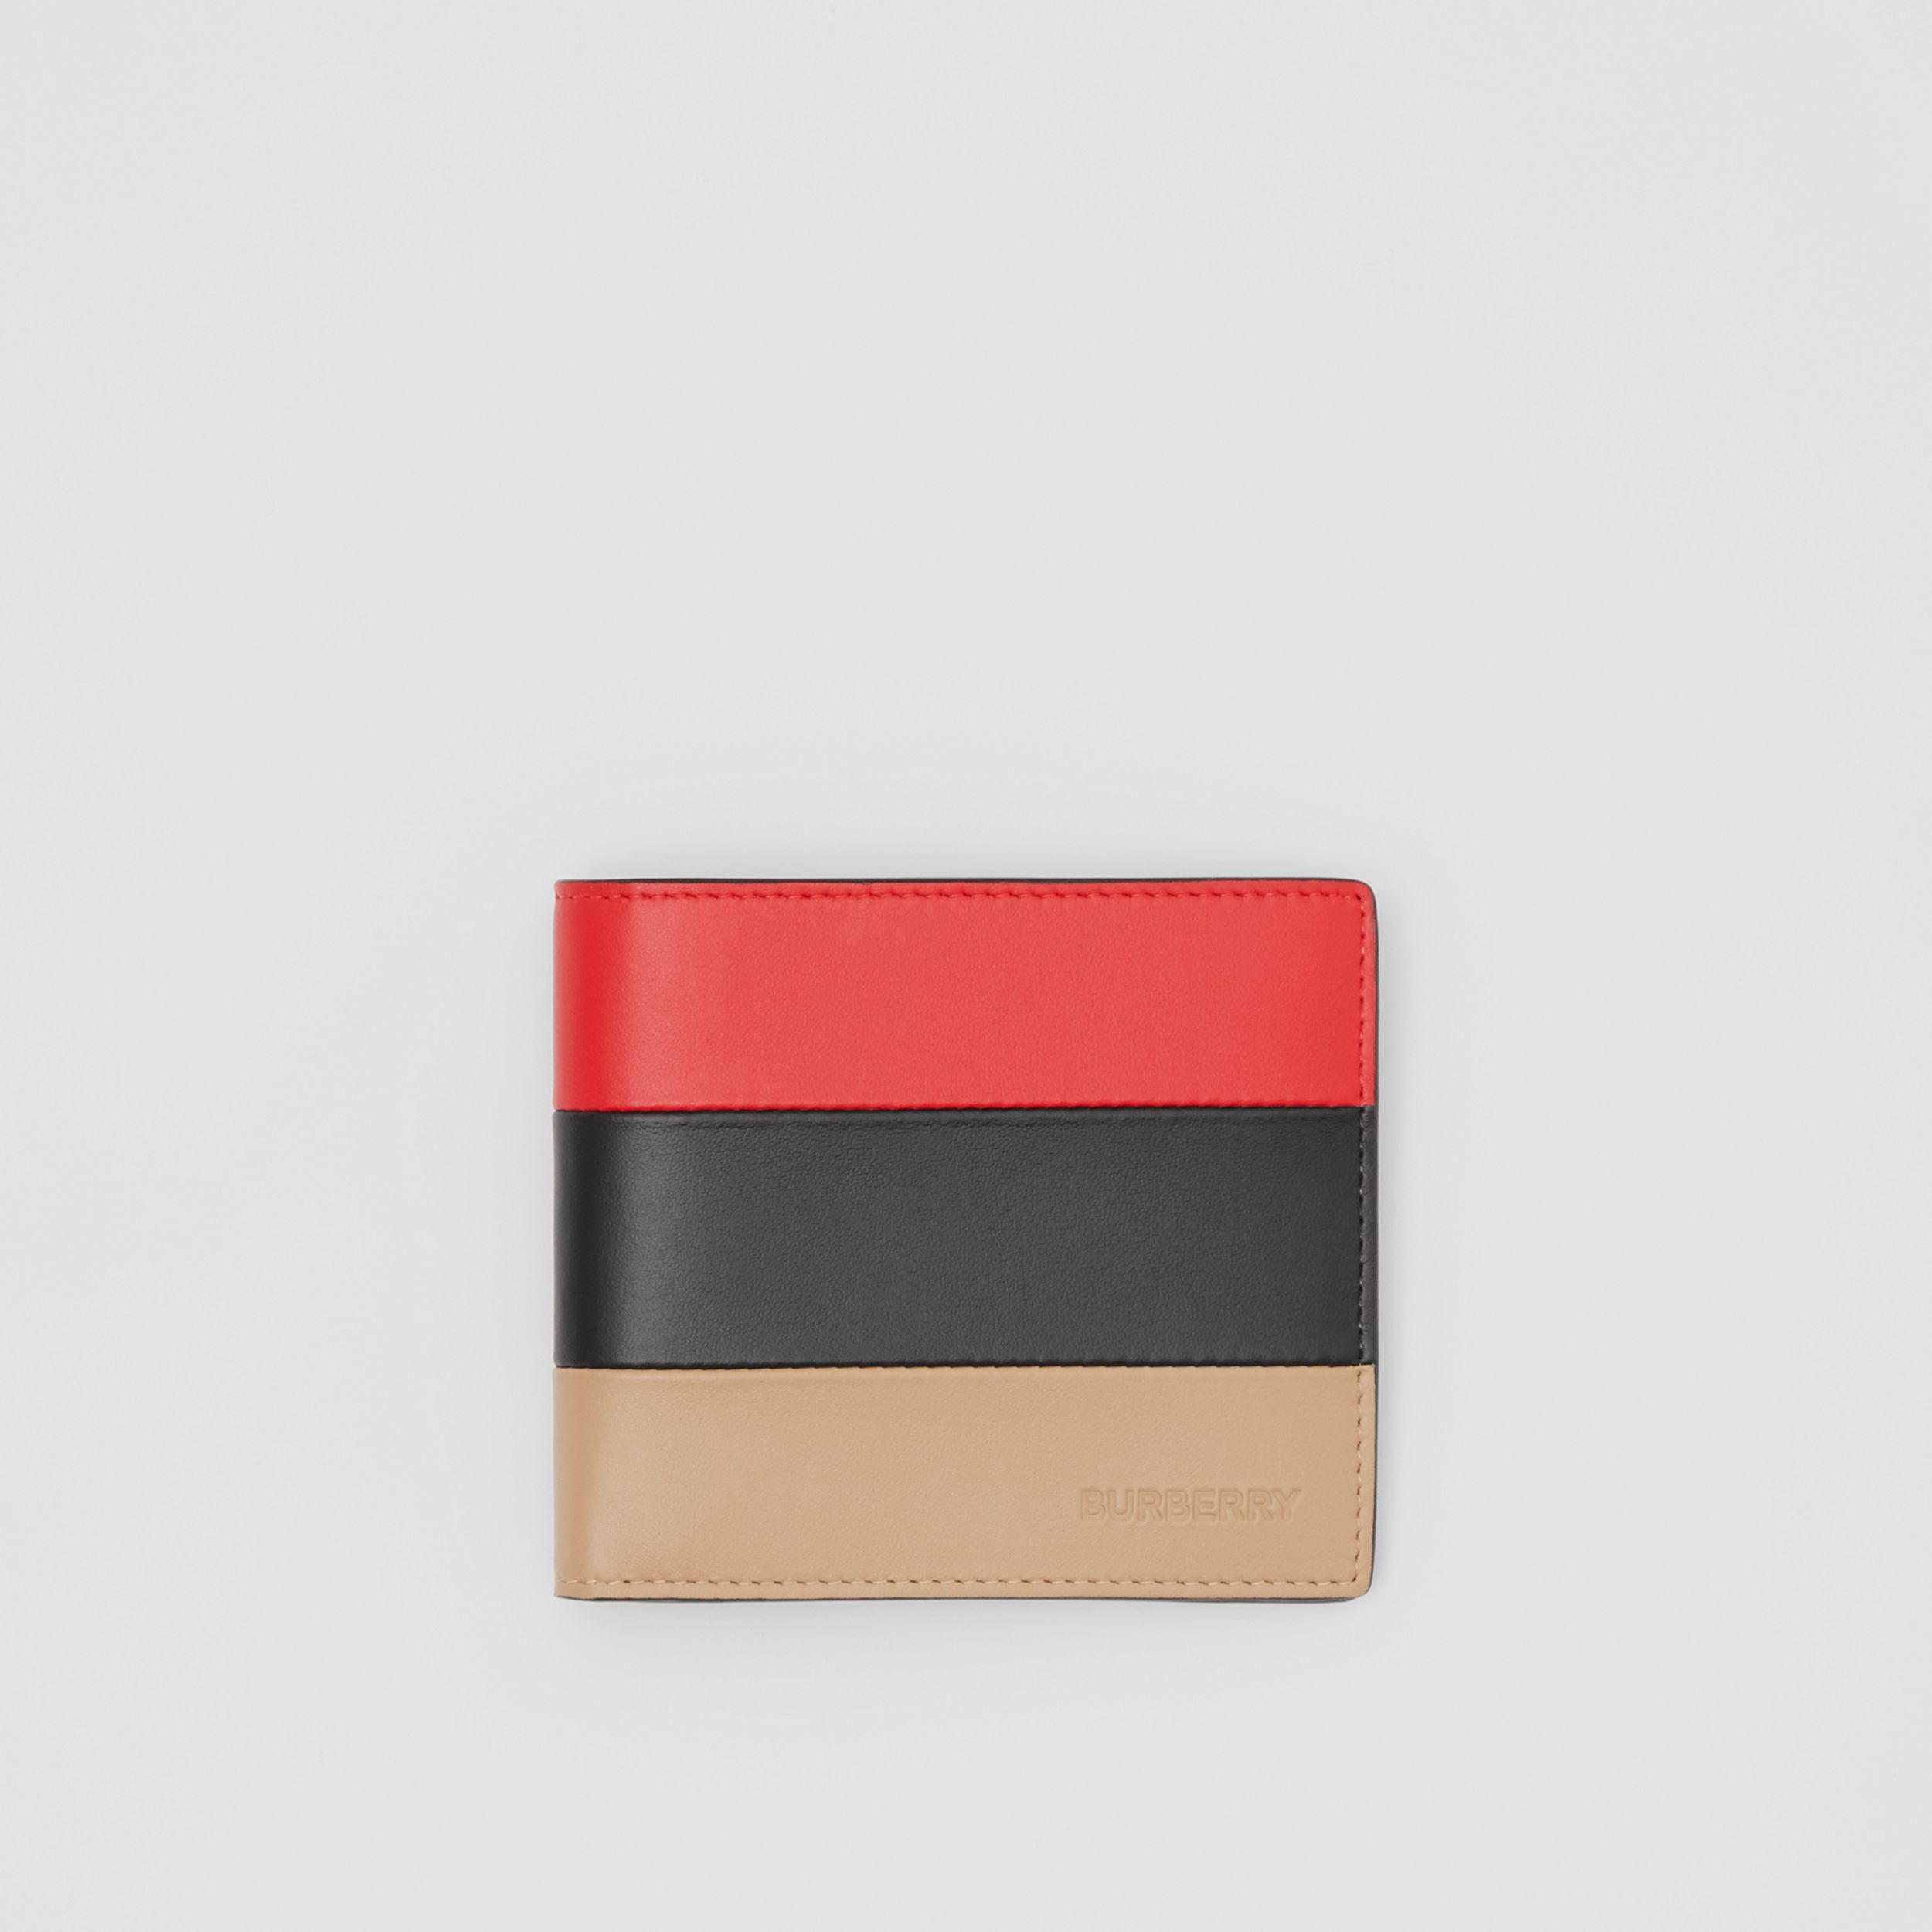 Colour Block Leather International Bifold Wallet in Red/black/beige - Men | Burberry - 1